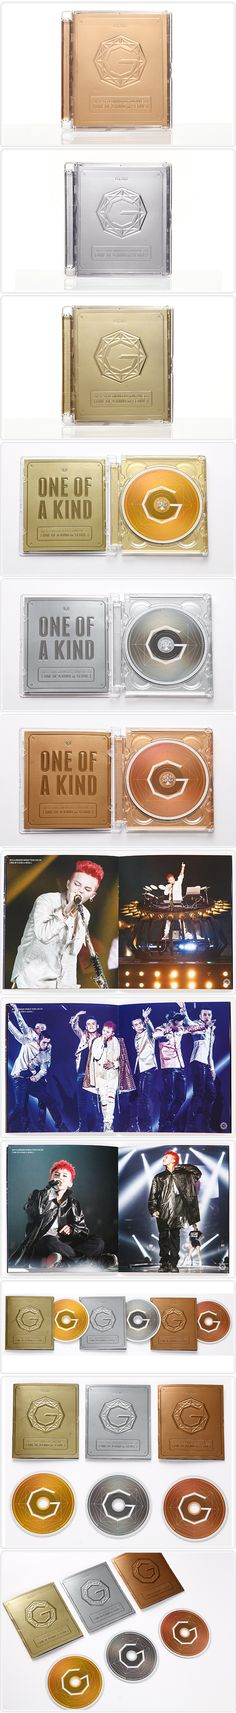 [2013 G-DRAGON WORLD TOUR LIVE CD [ONE OF A KIND in SEOUL]]